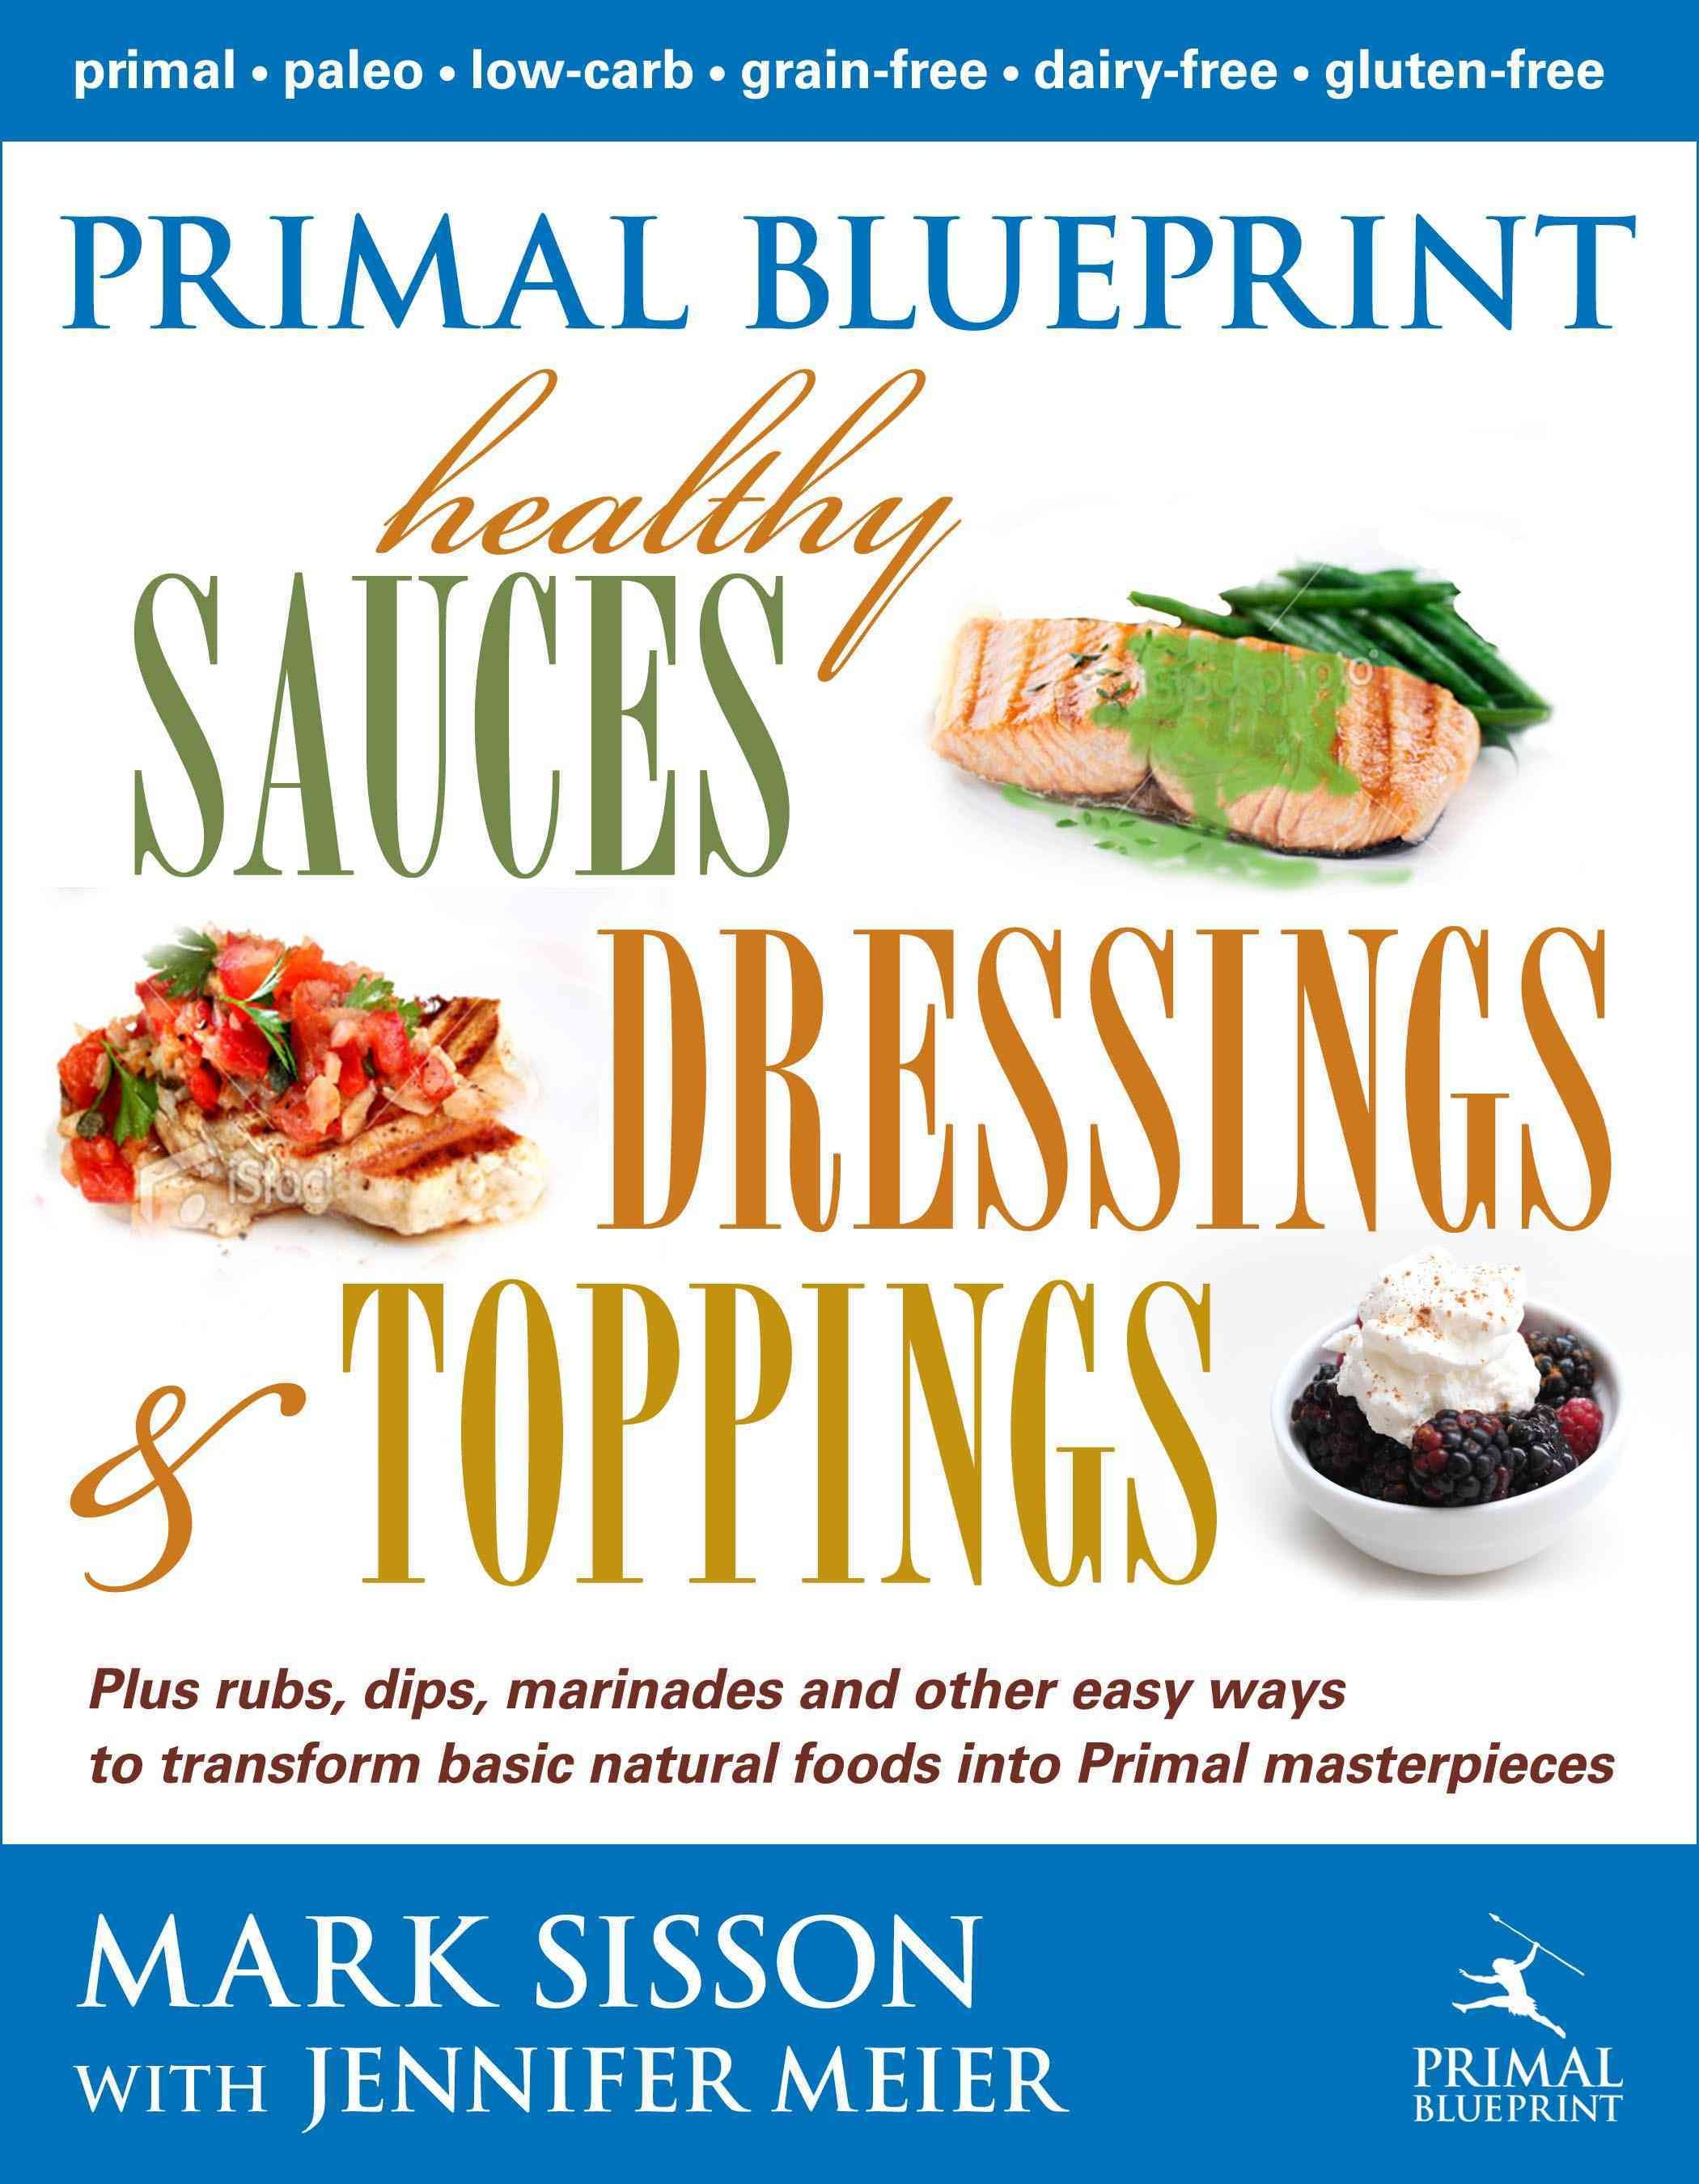 Primal blueprint healthy sauces dressings toppings healthy primal blueprint healthy sauces dressings toppings malvernweather